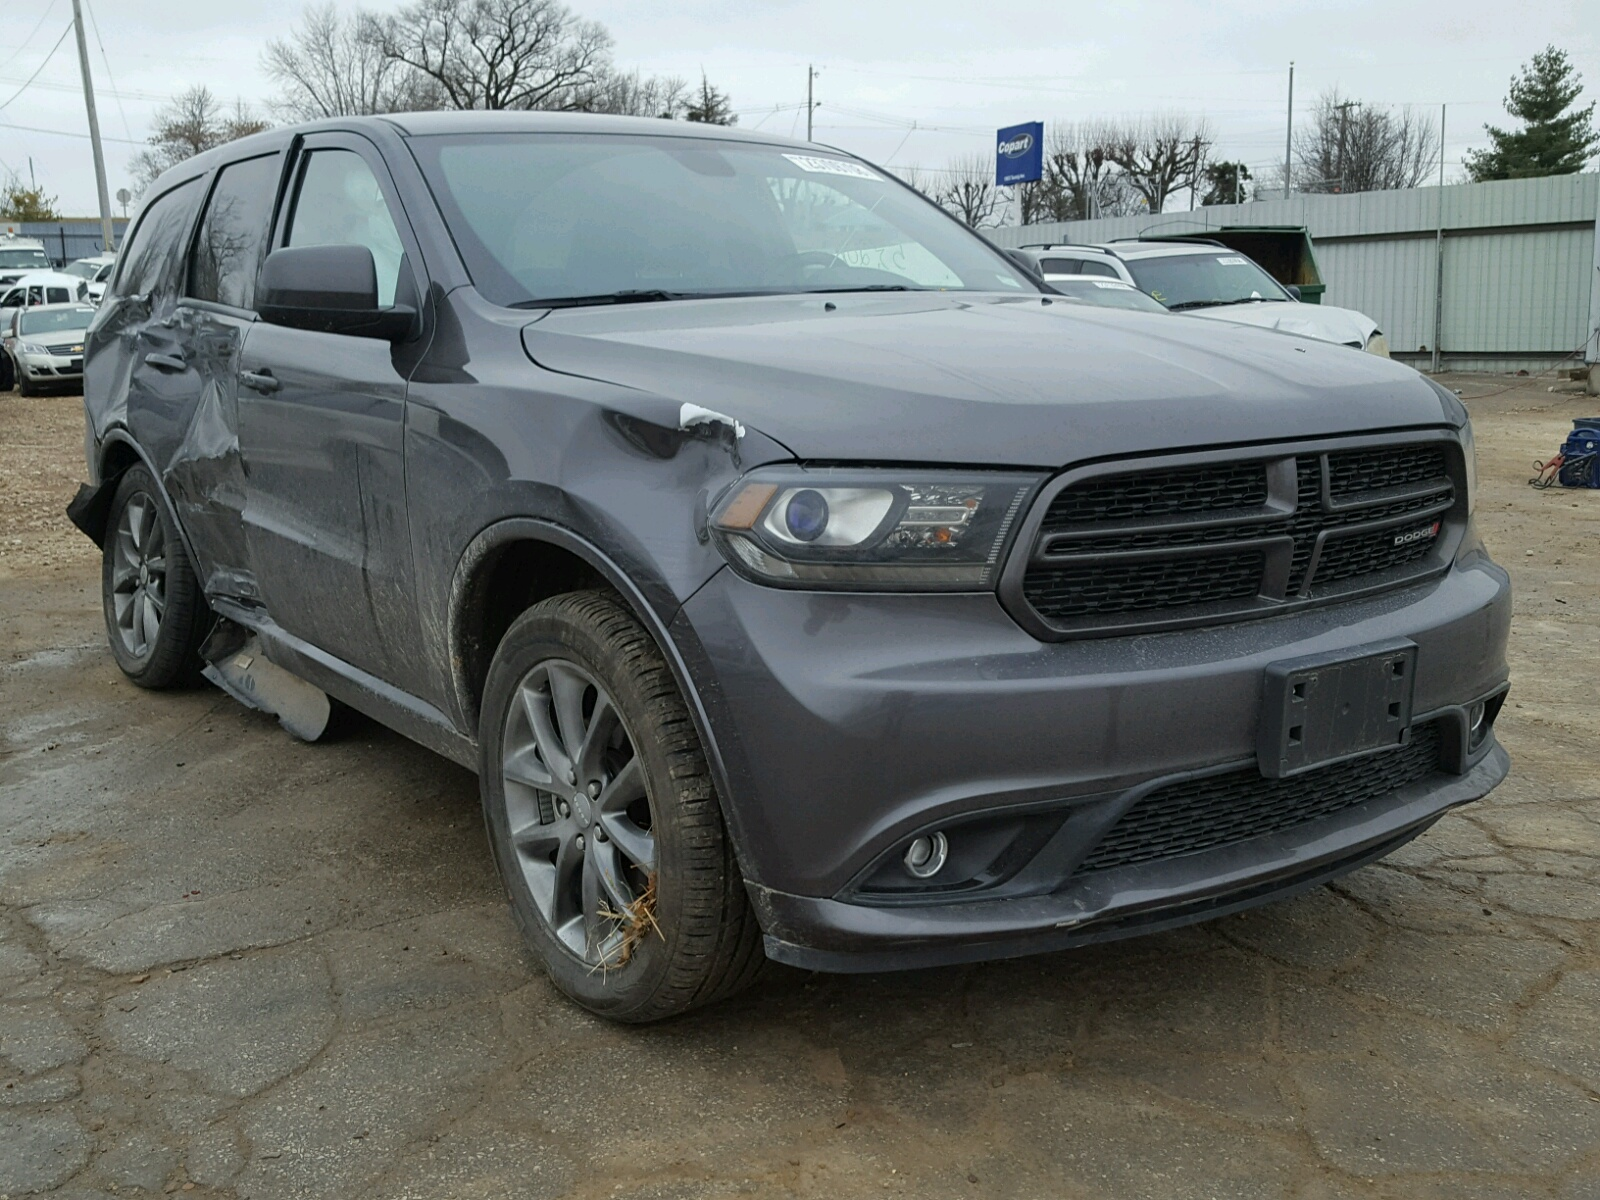 dodge journey for sale mn with Copart 2015 Dodge Durango R Salvage Title Denver Co on 2019 Dodge Durango In Snow For Sale Manual Transmission moreover Images Of Jesus Birth page 3 besides Used White Bear Lake 2012 Dodge Journey SXT 3C4PDDBG3CT154682 additionally Jayco Pop Up C er Interior additionally Landers Chrysler Dodge Jeep Ram Of Norman Chrysler.